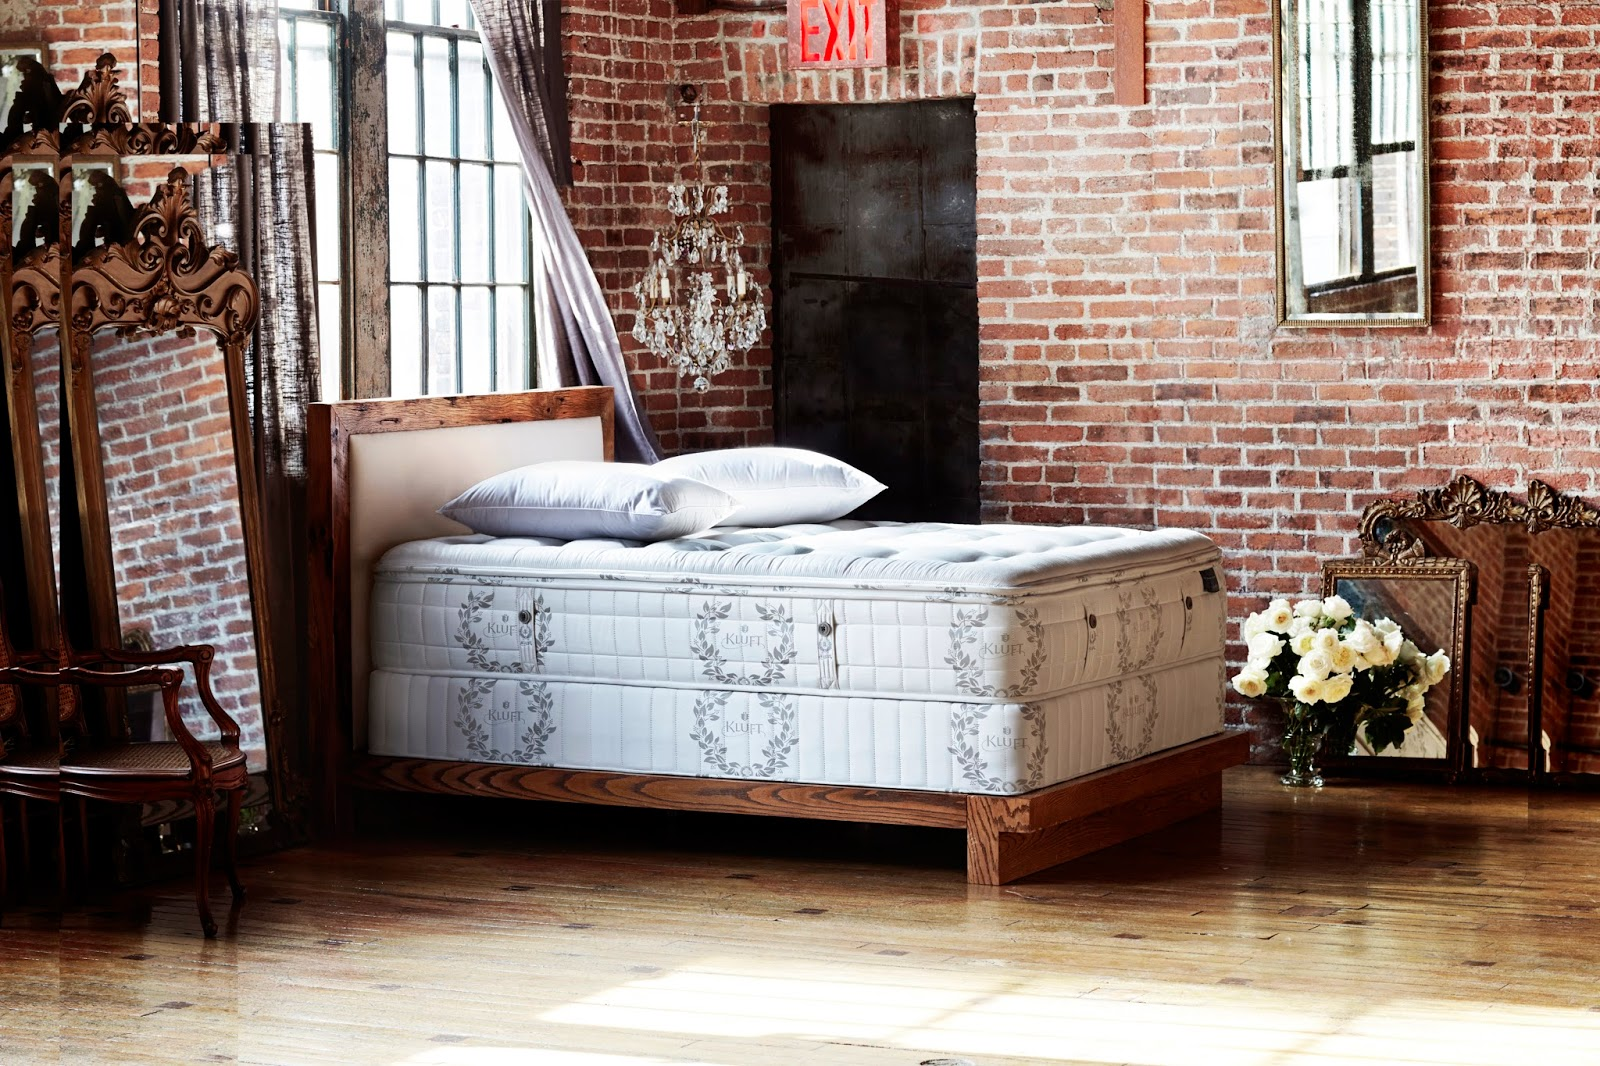 Bloomingdale s Furniture Gallery located in the Roosevelt Field Mall in Garden  City  NY recently debuted a newly renovated Mattress Department. Interior Design Society Online Portfolio  BLOOMINGDALE S FURNITURE